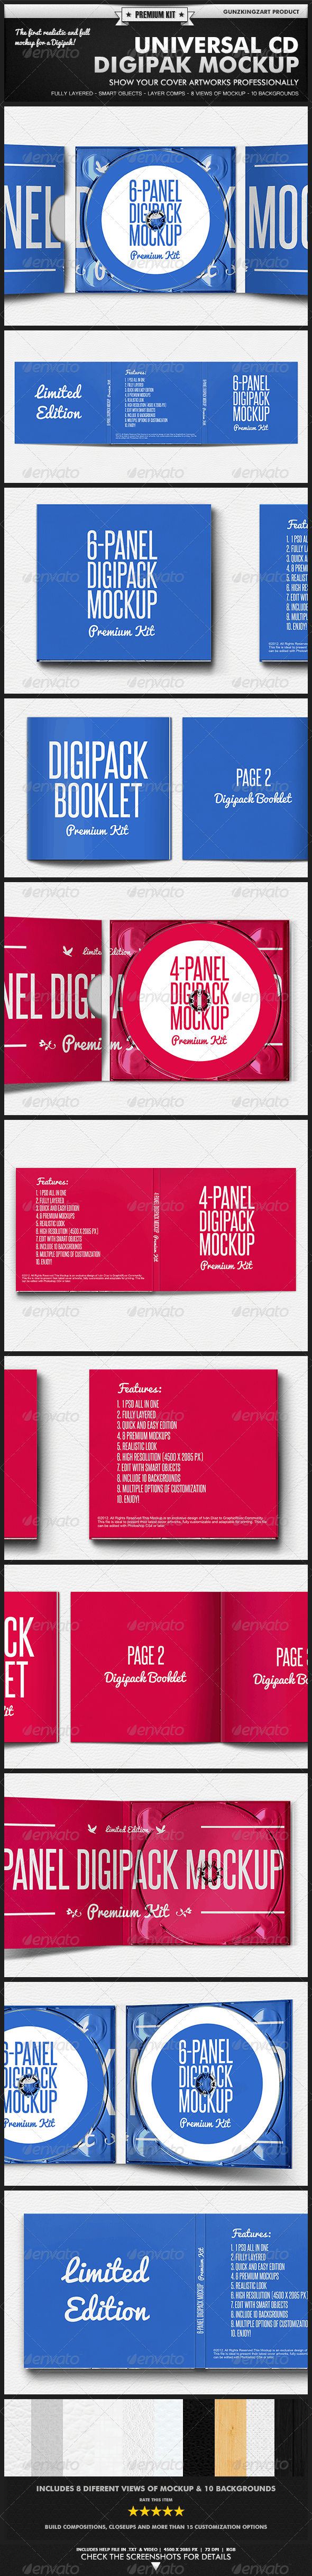 Digipak CD Mockup - Premium Kit - Discs Packaging